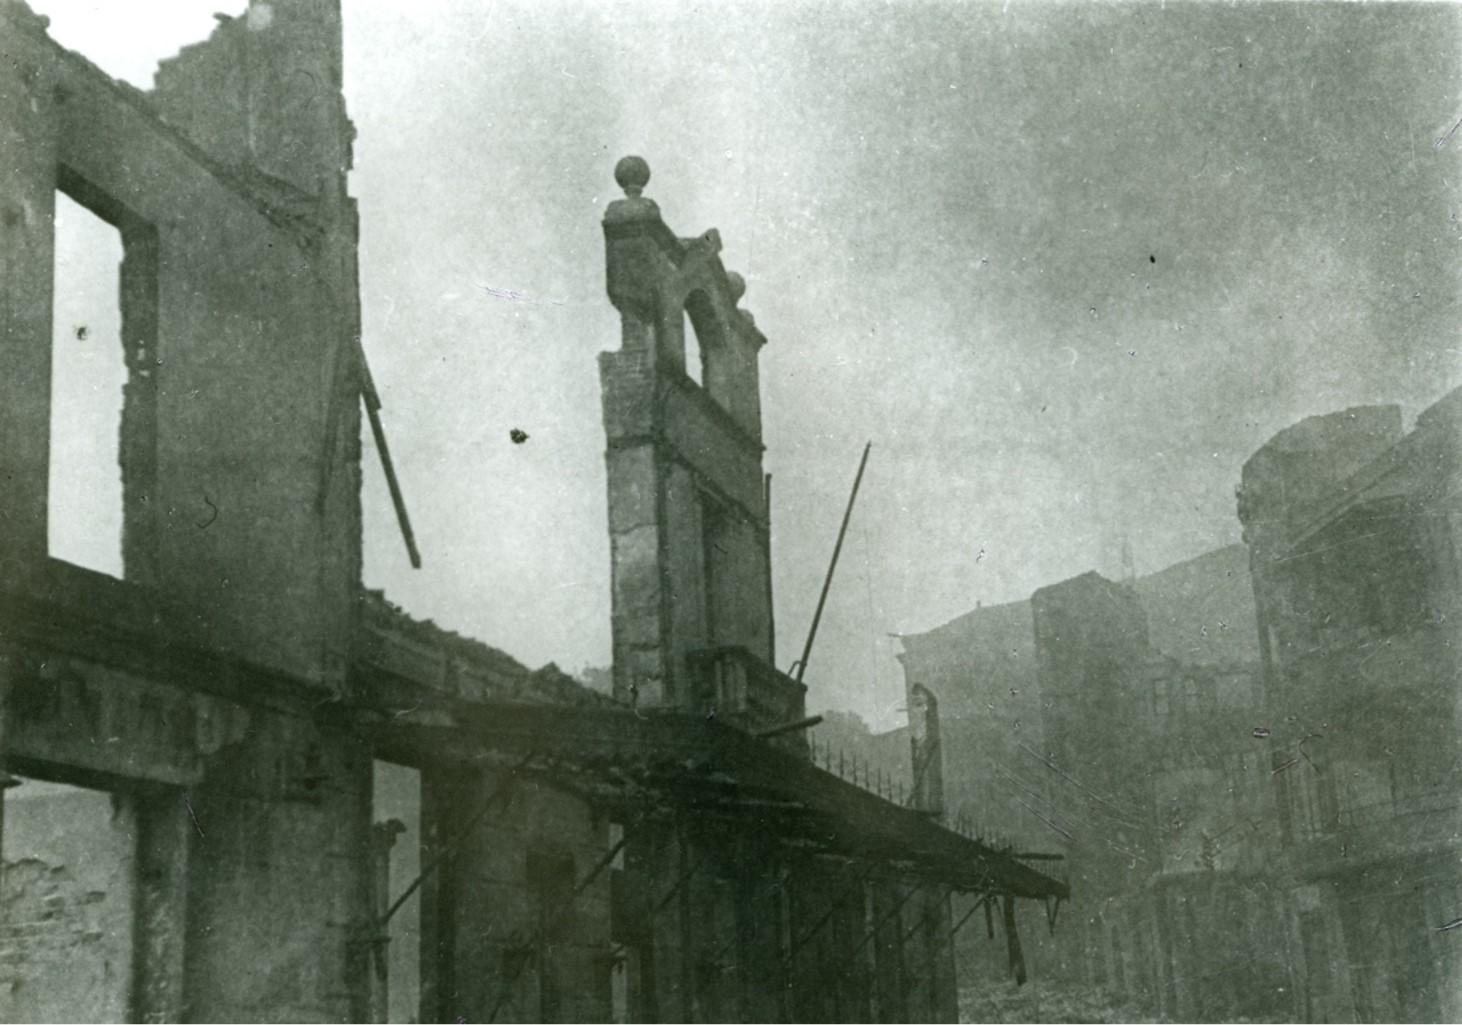 A destroyed building in Guernica, Spain.